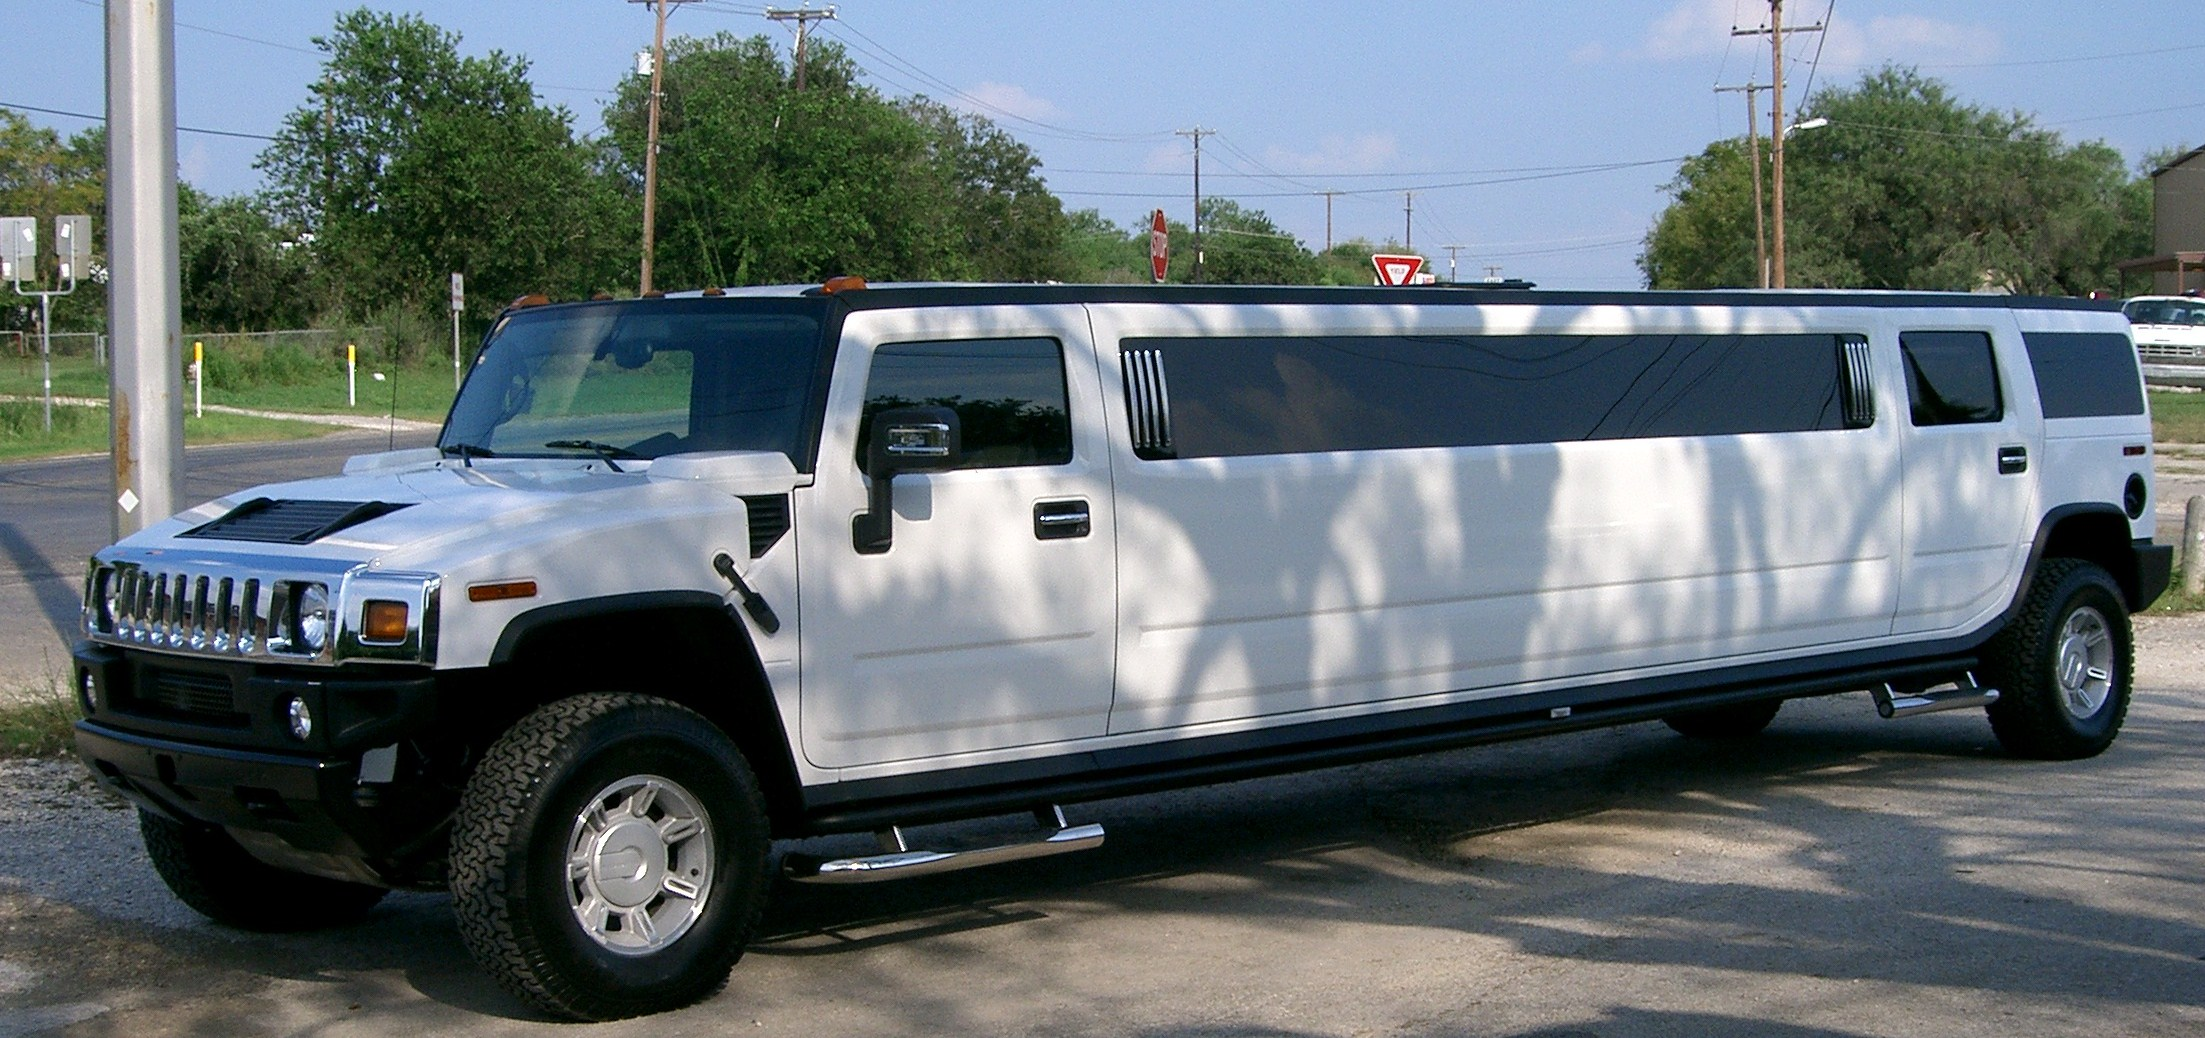 Big Time Limos Hummer Limo